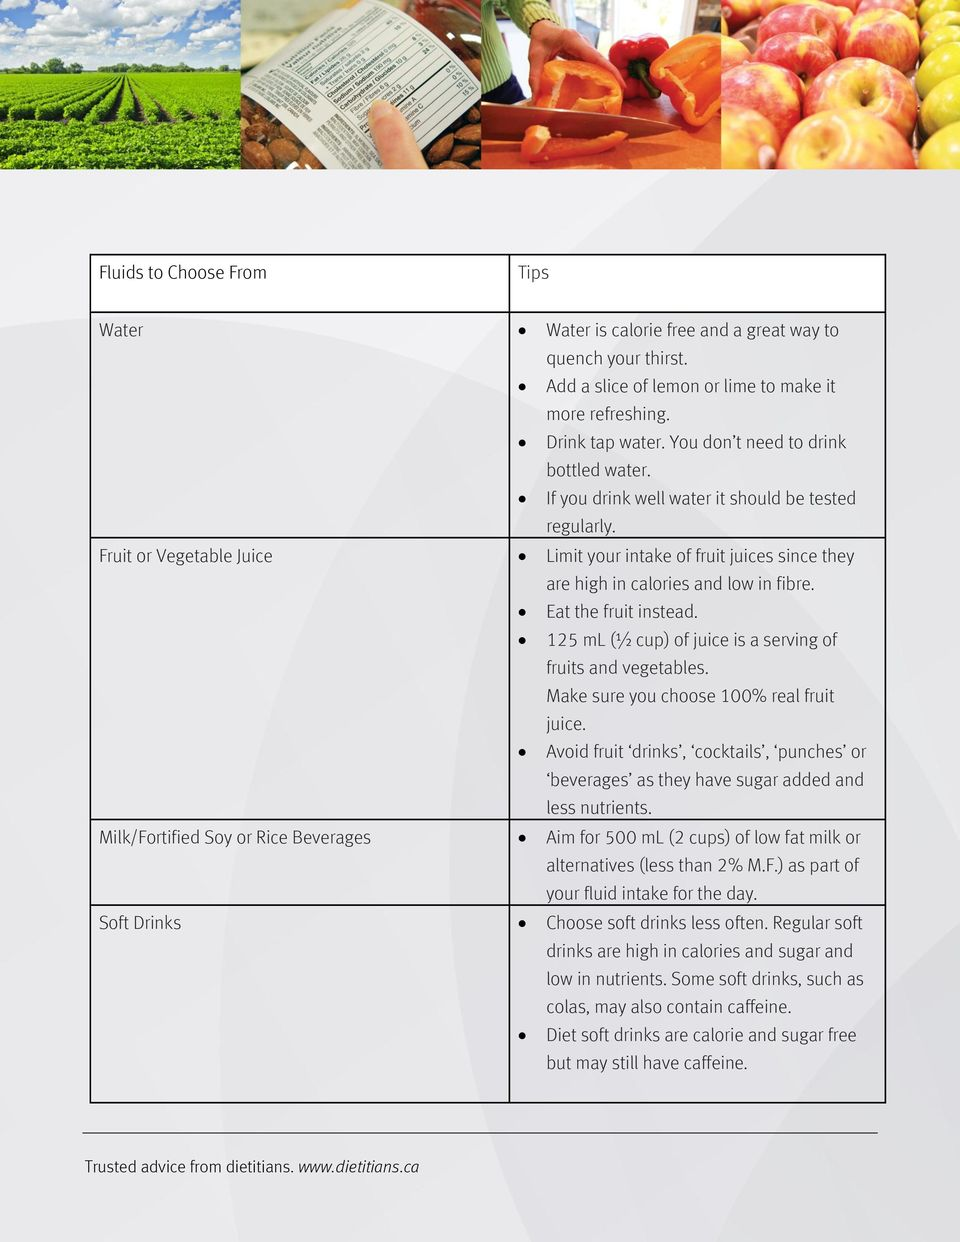 Fruit or Vegetable Juice Limit your intake of fruit juices since they are high in calories and low in fibre. Eat the fruit instead. 125 ml (½ cup) of juice is a serving of fruits and vegetables.